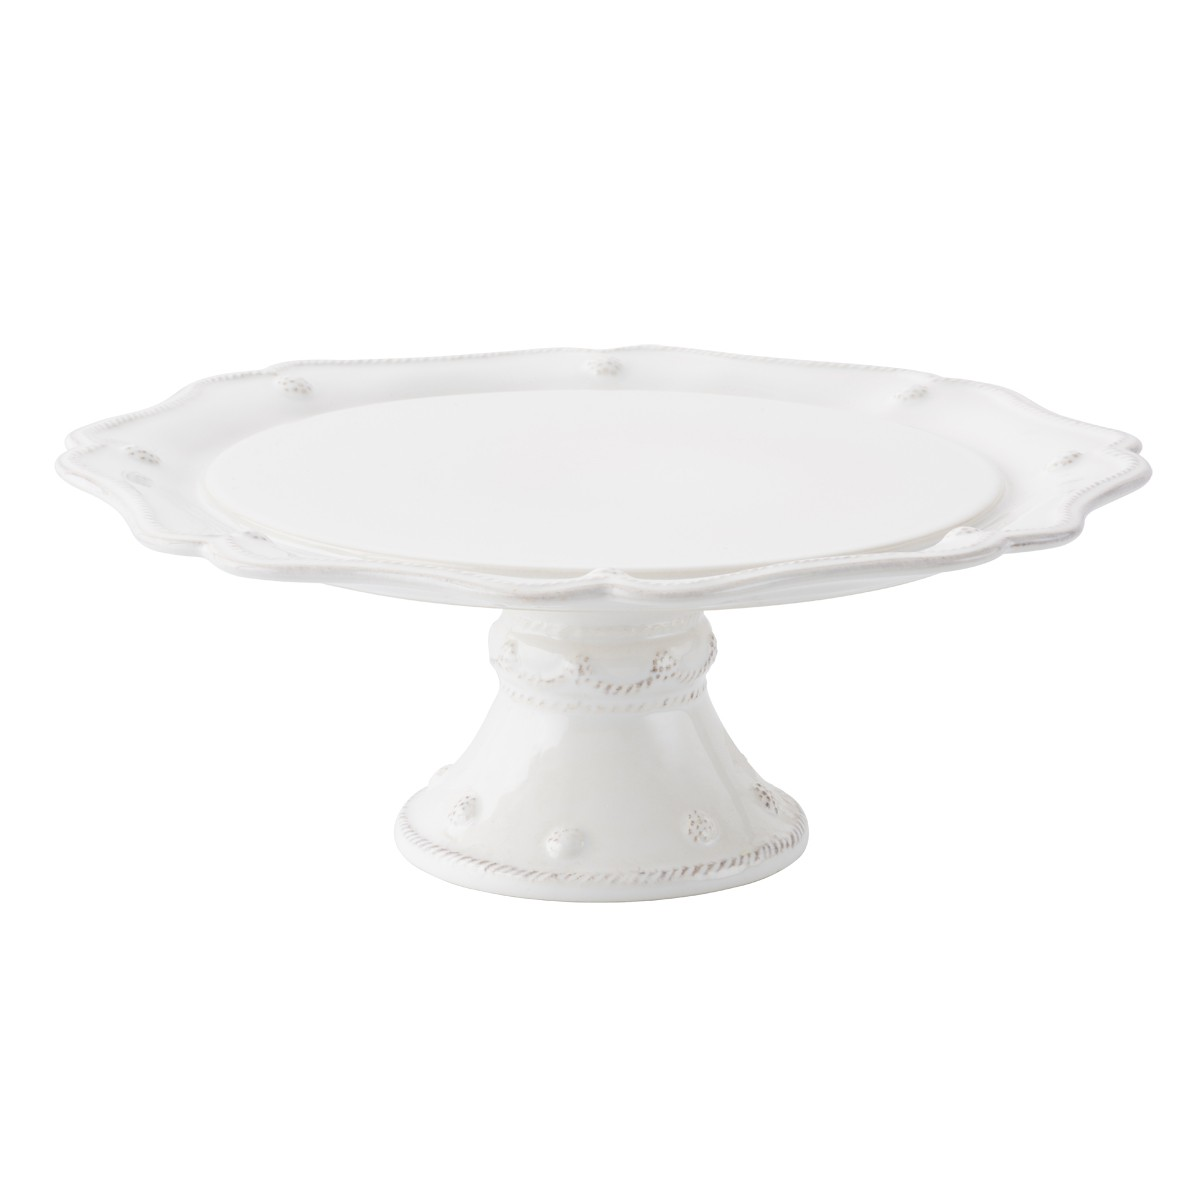 16519 - Berry & Thread Cake Stand - $95